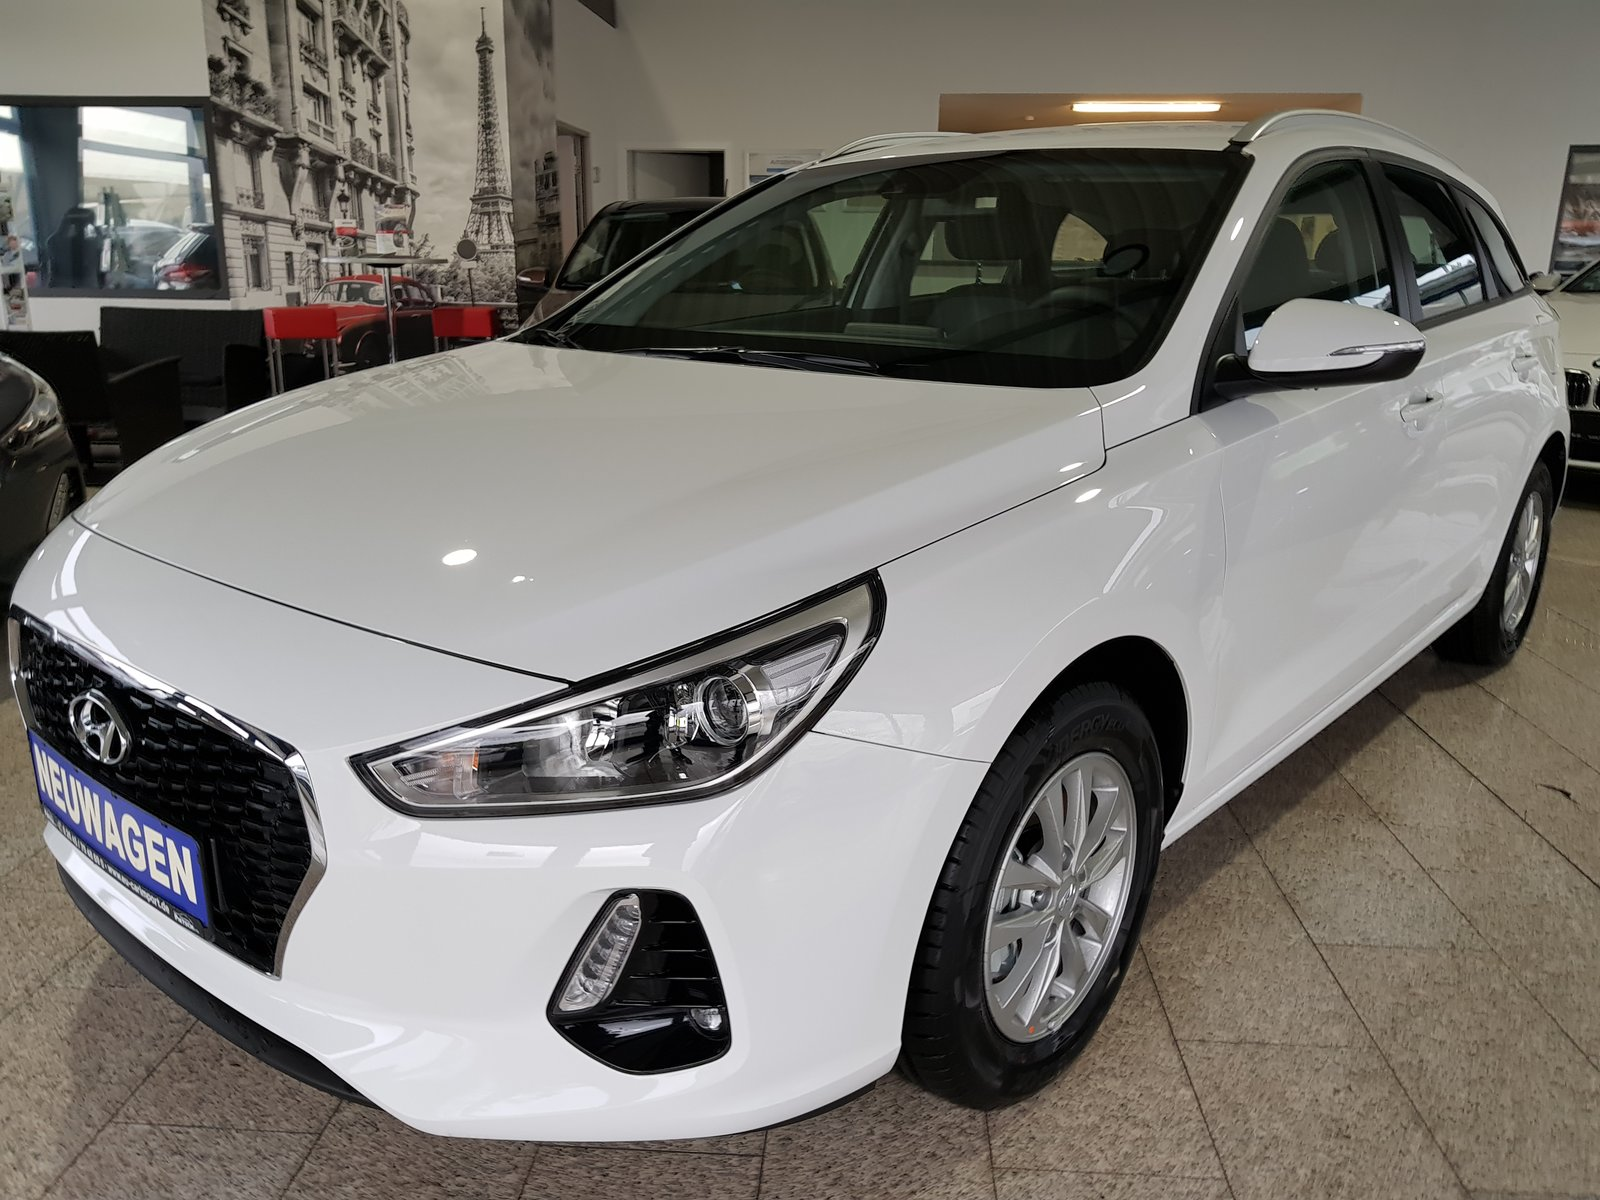 HYUNDAI I30 Kombi 1.4 T-GDI *Neues Modell*Klima*PDC*ZVR* Autosoft BV, Enschede